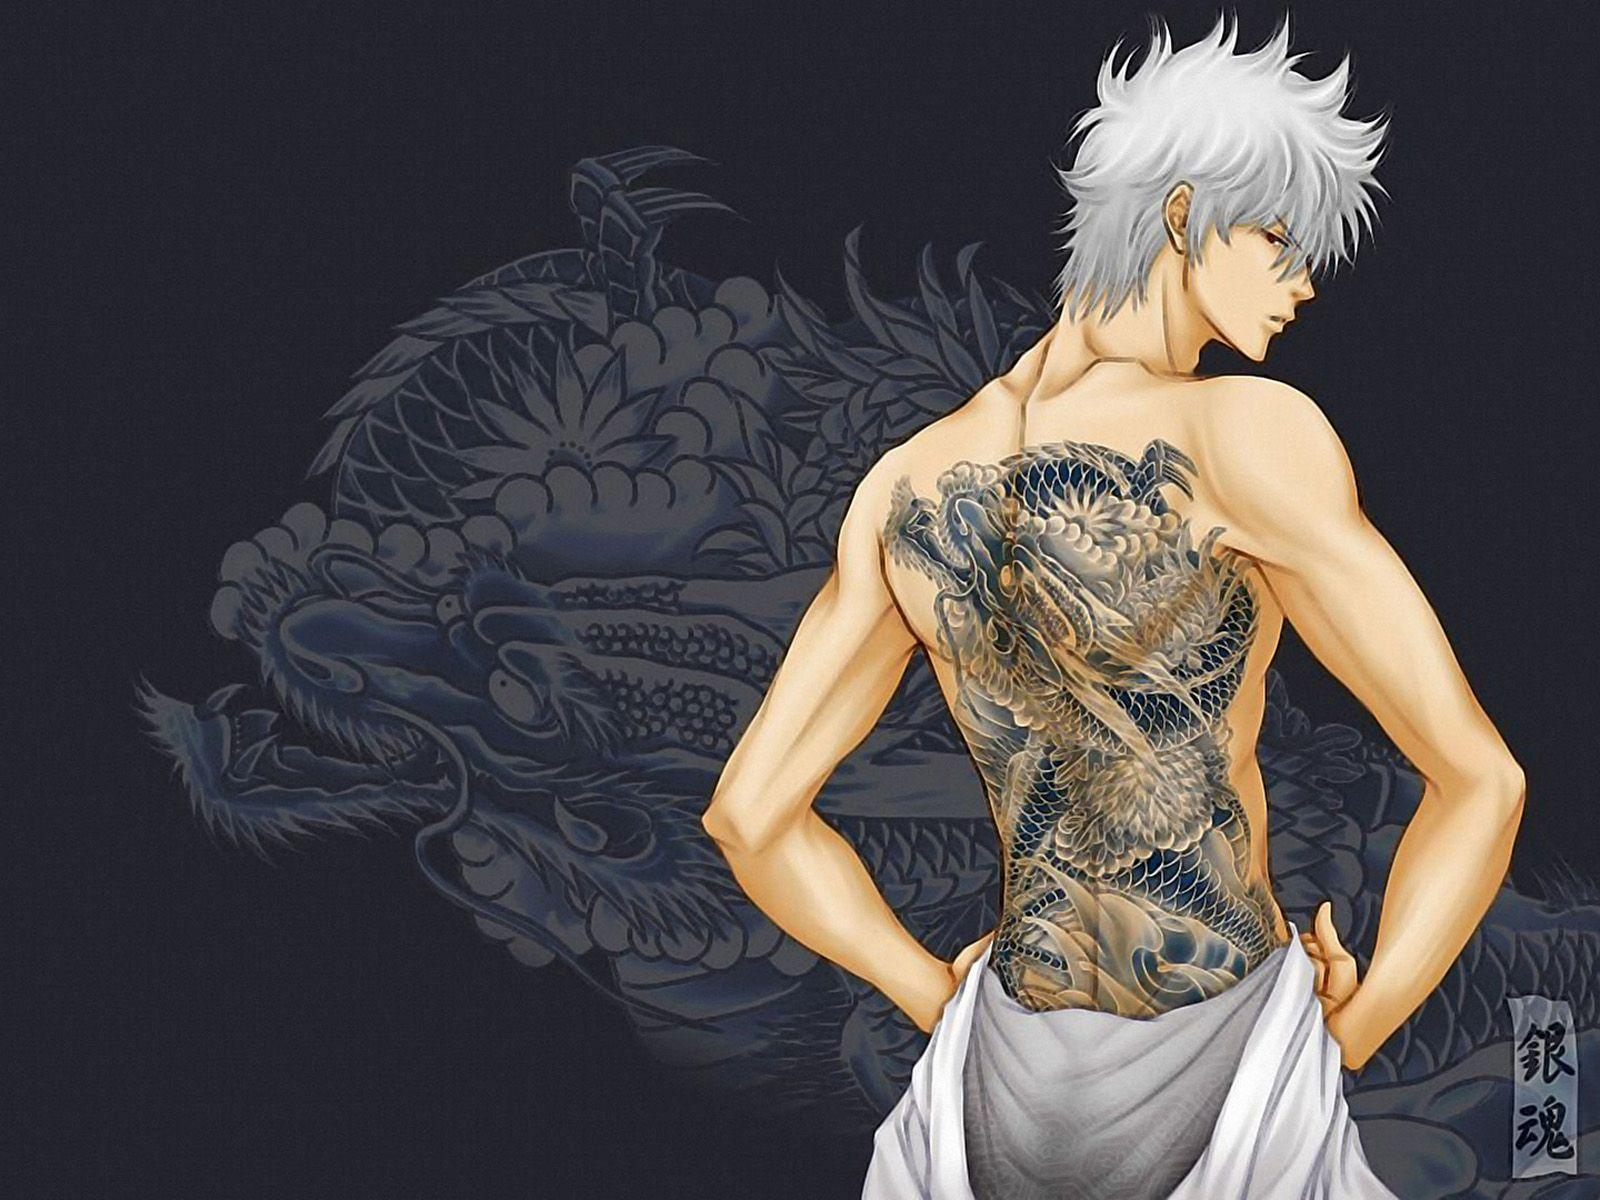 sakata gintoki Wallpapers